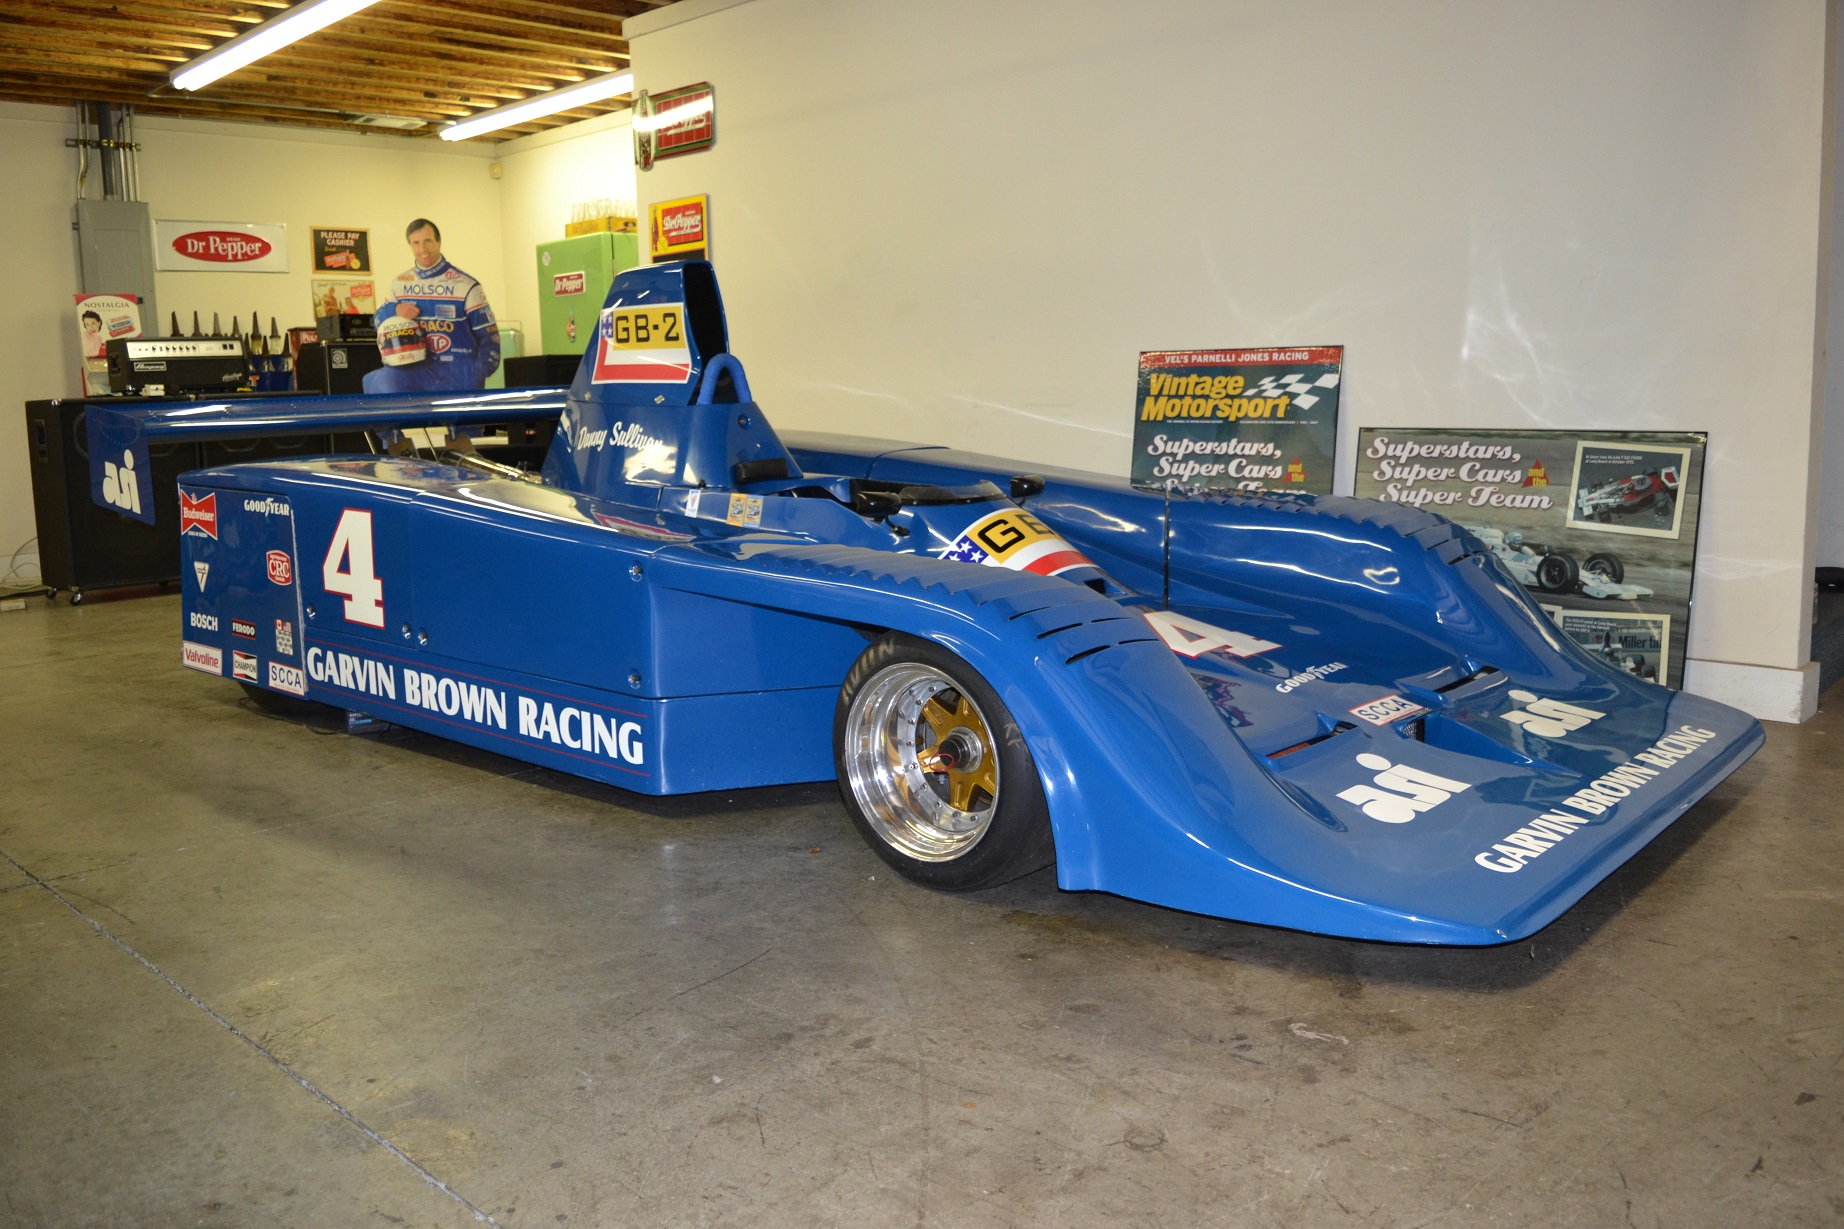 Single Seater Race Car For Sale Uk